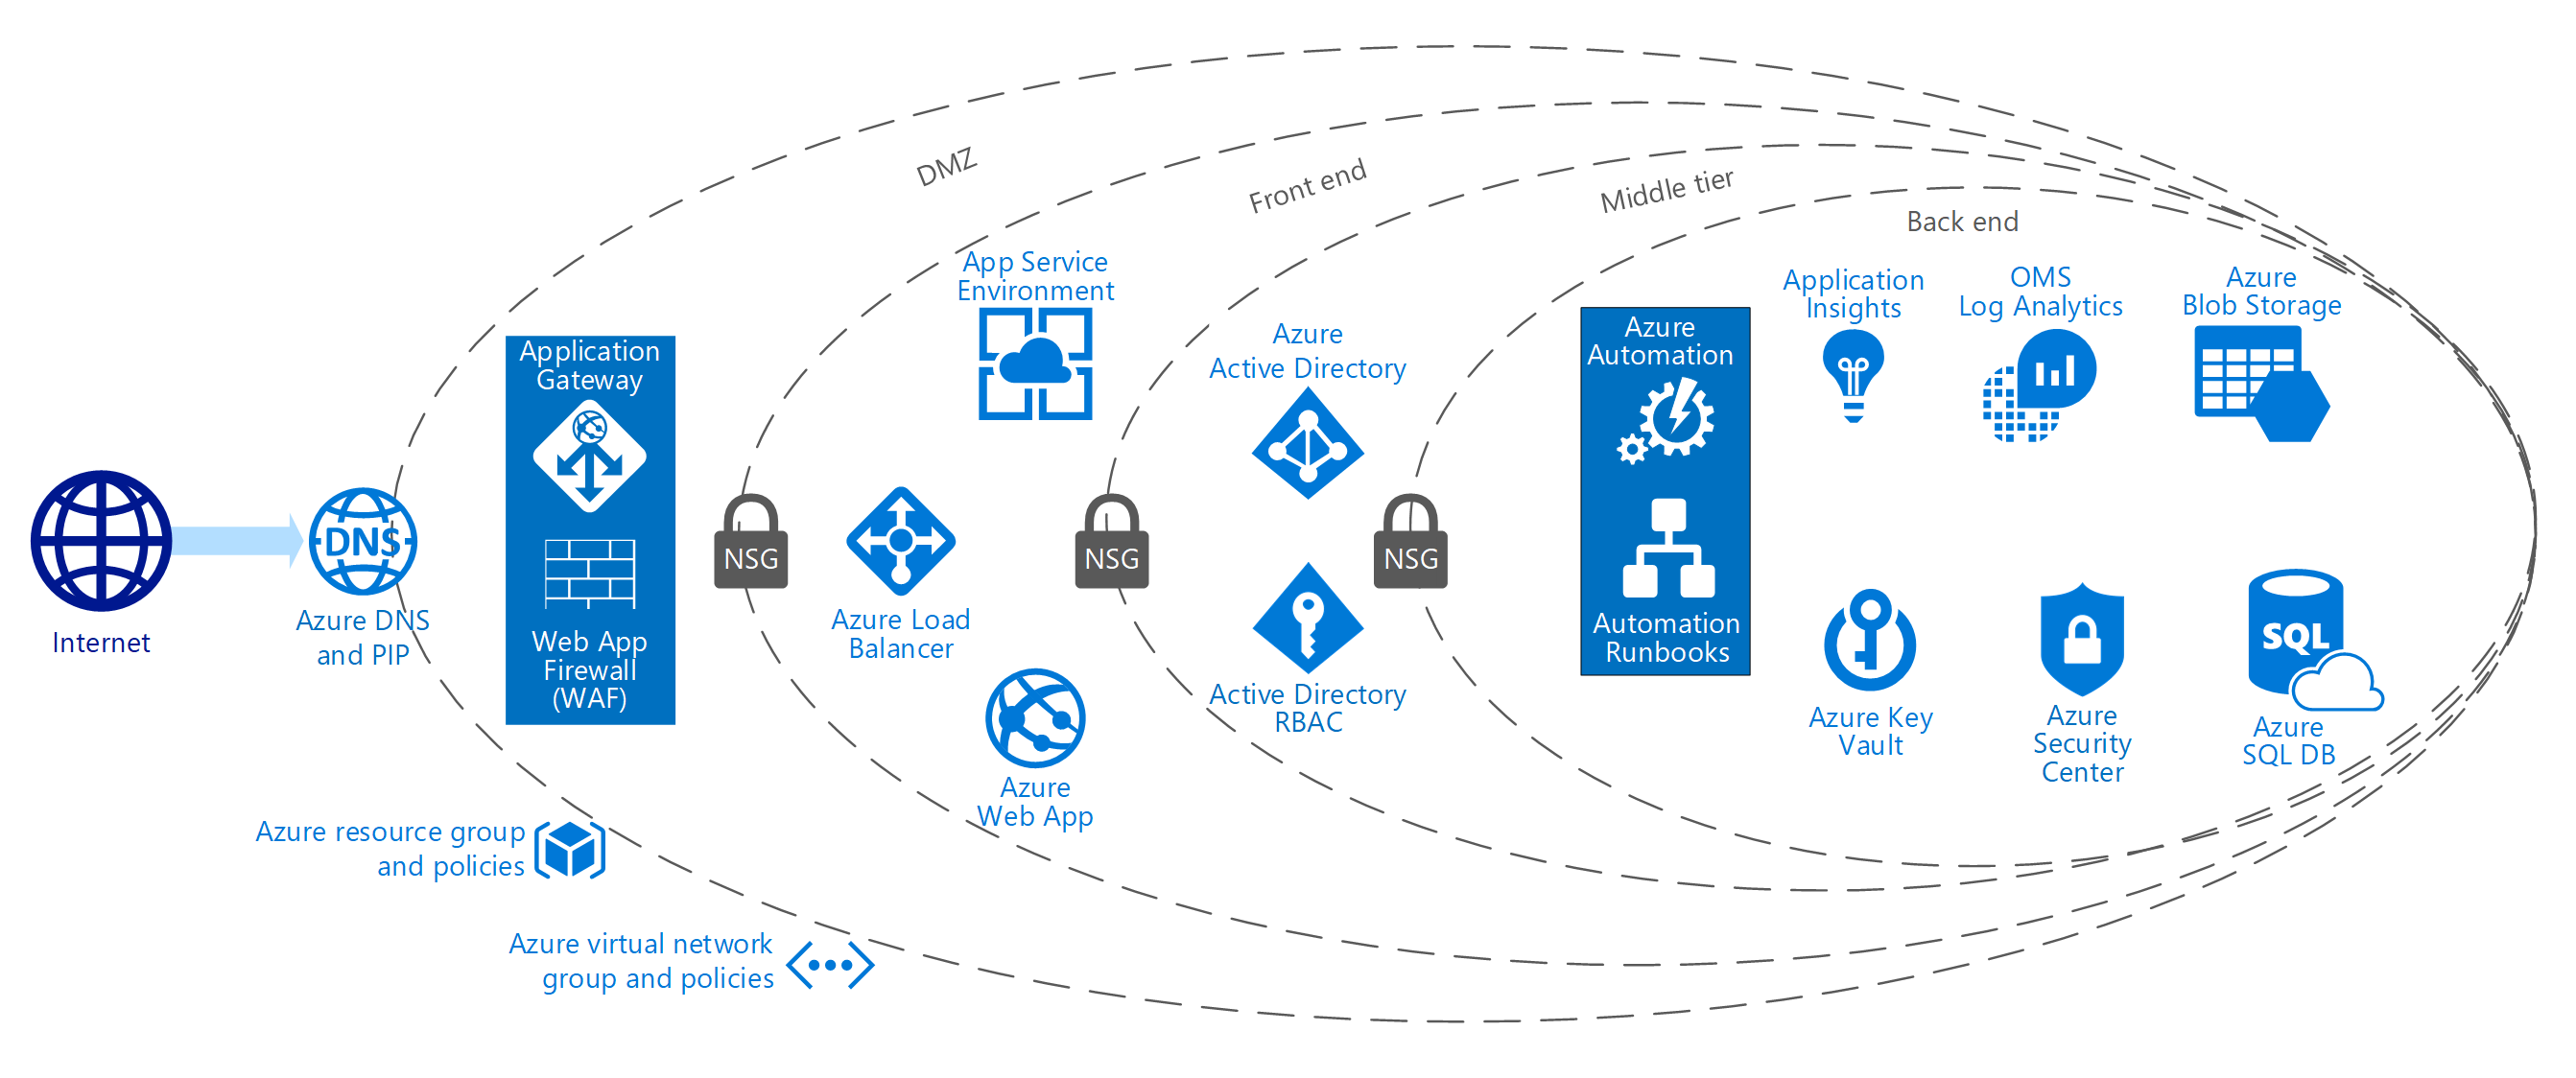 Azure security and compliance blueprint for pci dss compliant azure solutions blueprint malvernweather